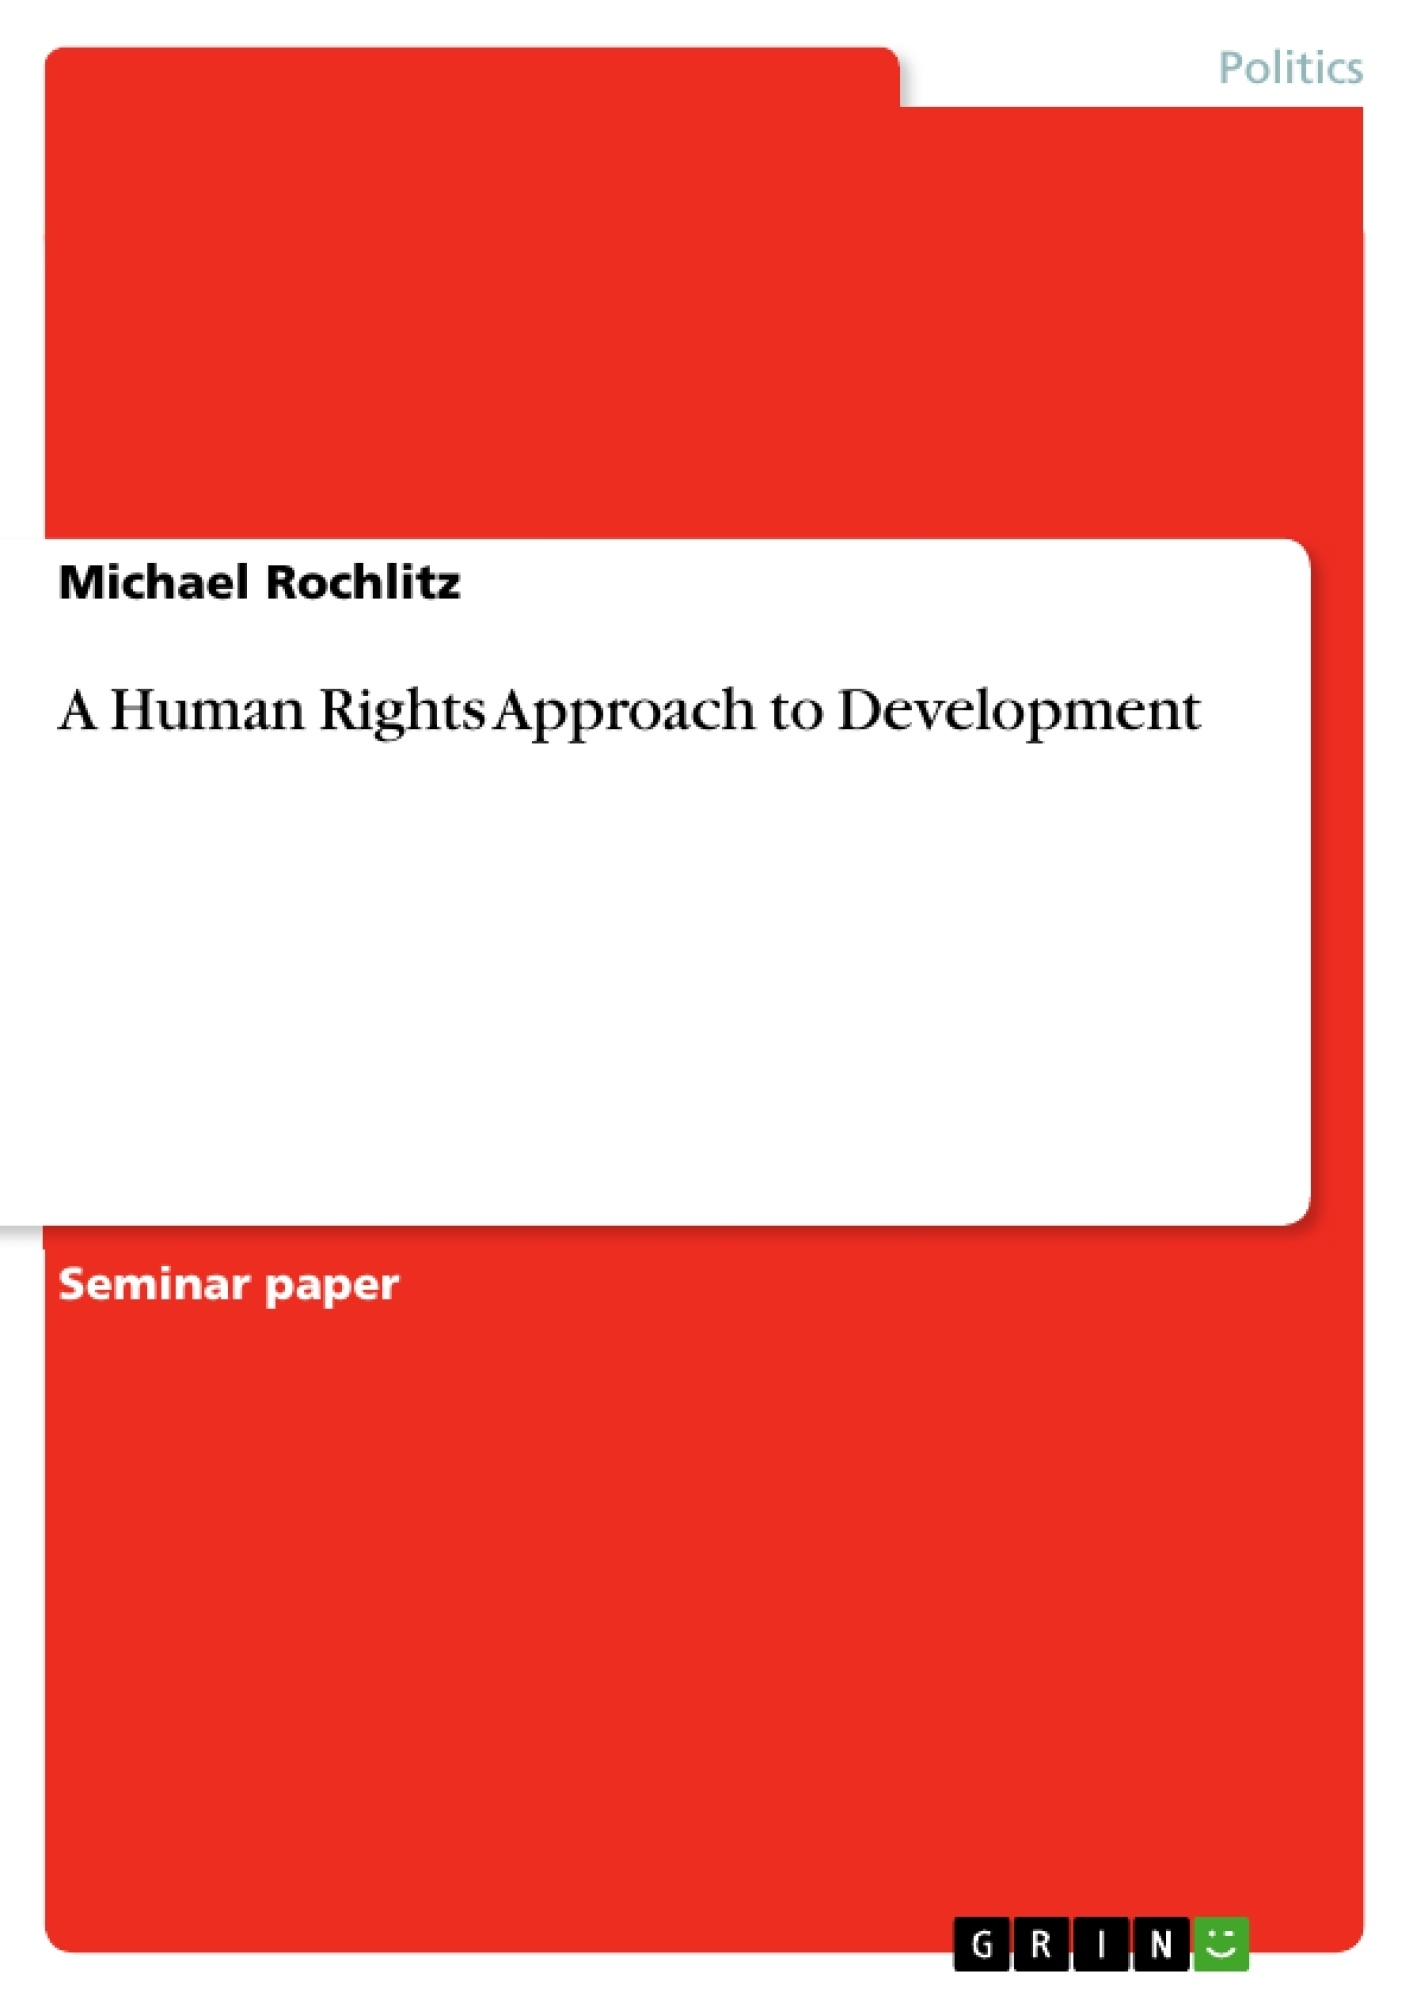 the orthodox approach to development politics essay The conditions for development based upon washington consensus model were rigid and homogeneous to virtually all developing countries that embraced it, where as the beijing consensus takes cognisance of a case by case challenge unique to each national economy, offering a more flexible approach towards addressing development problems in the .